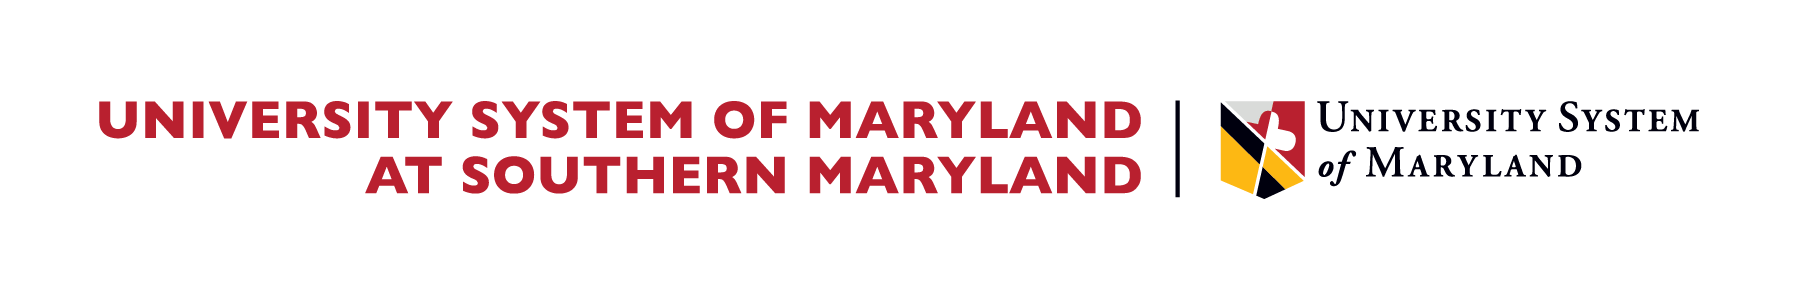 The University System of Maryland at Southern Maryland Logo